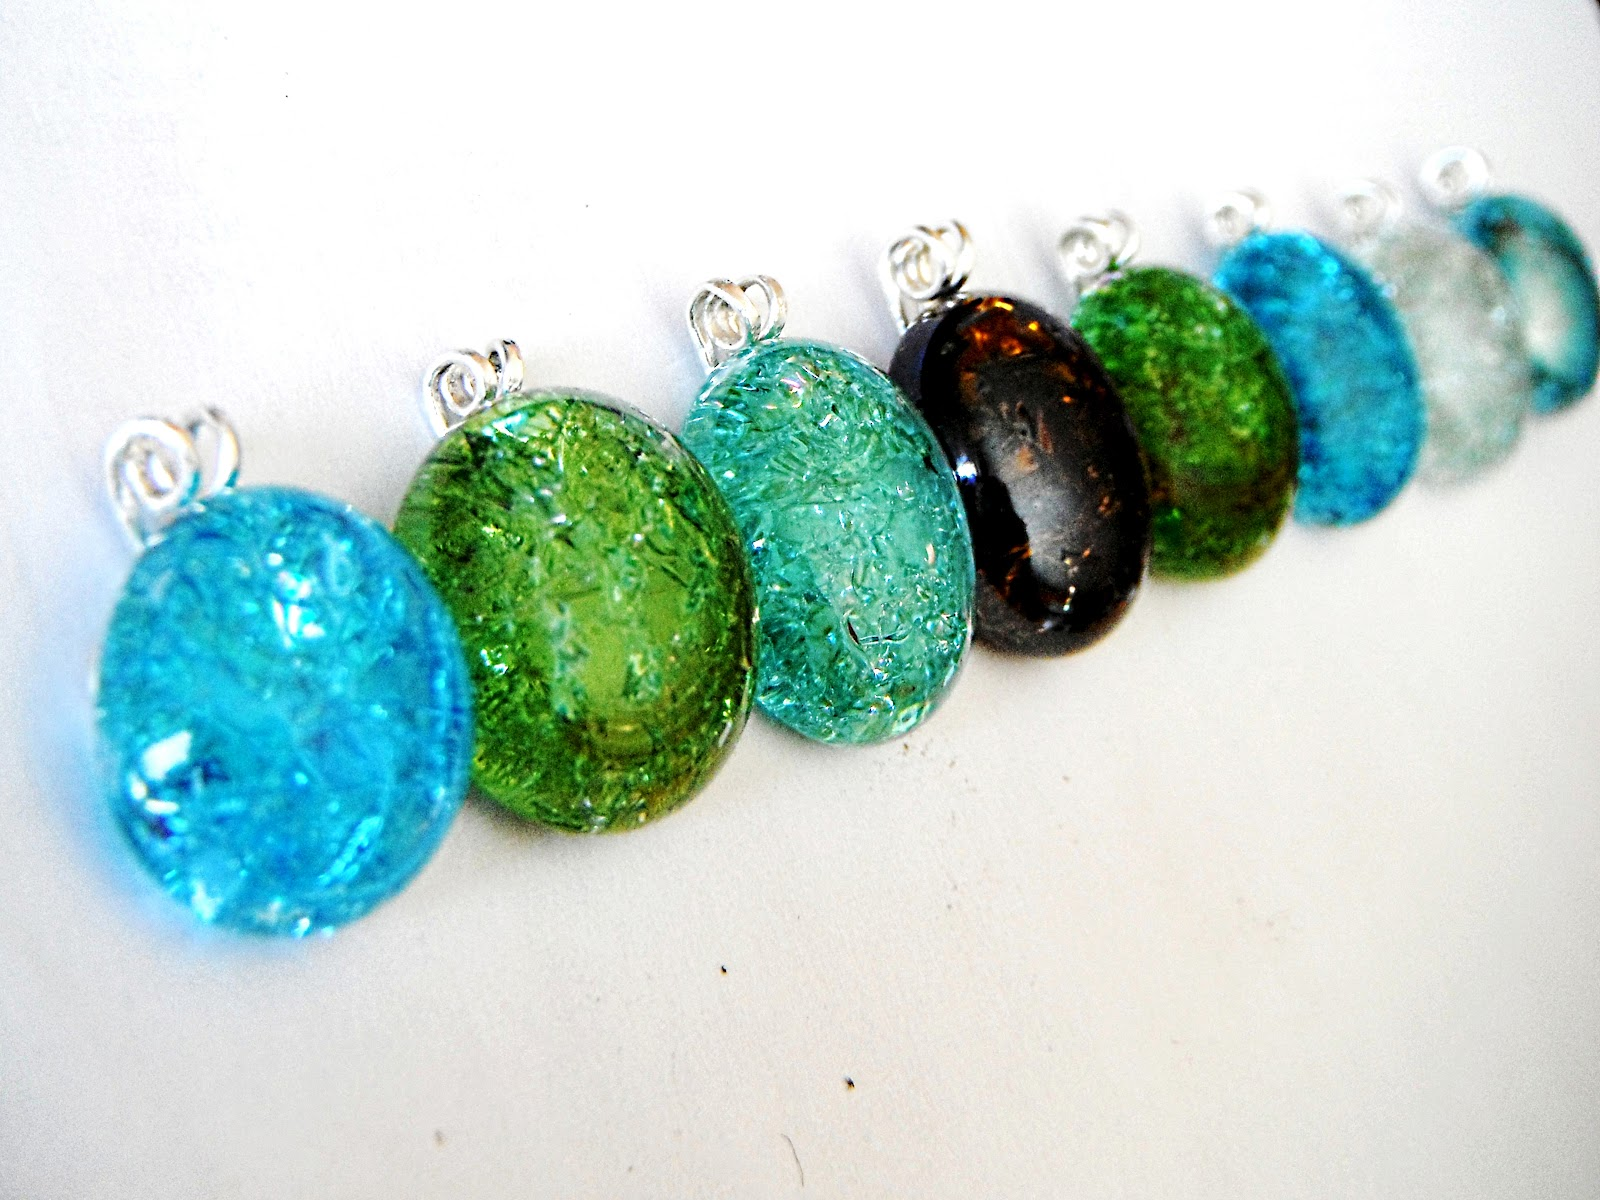 Flat glass marbles crafts - Flat Glass Marbles Crafts Flat Glass Marbles Crafts Flat Marble Necklaces